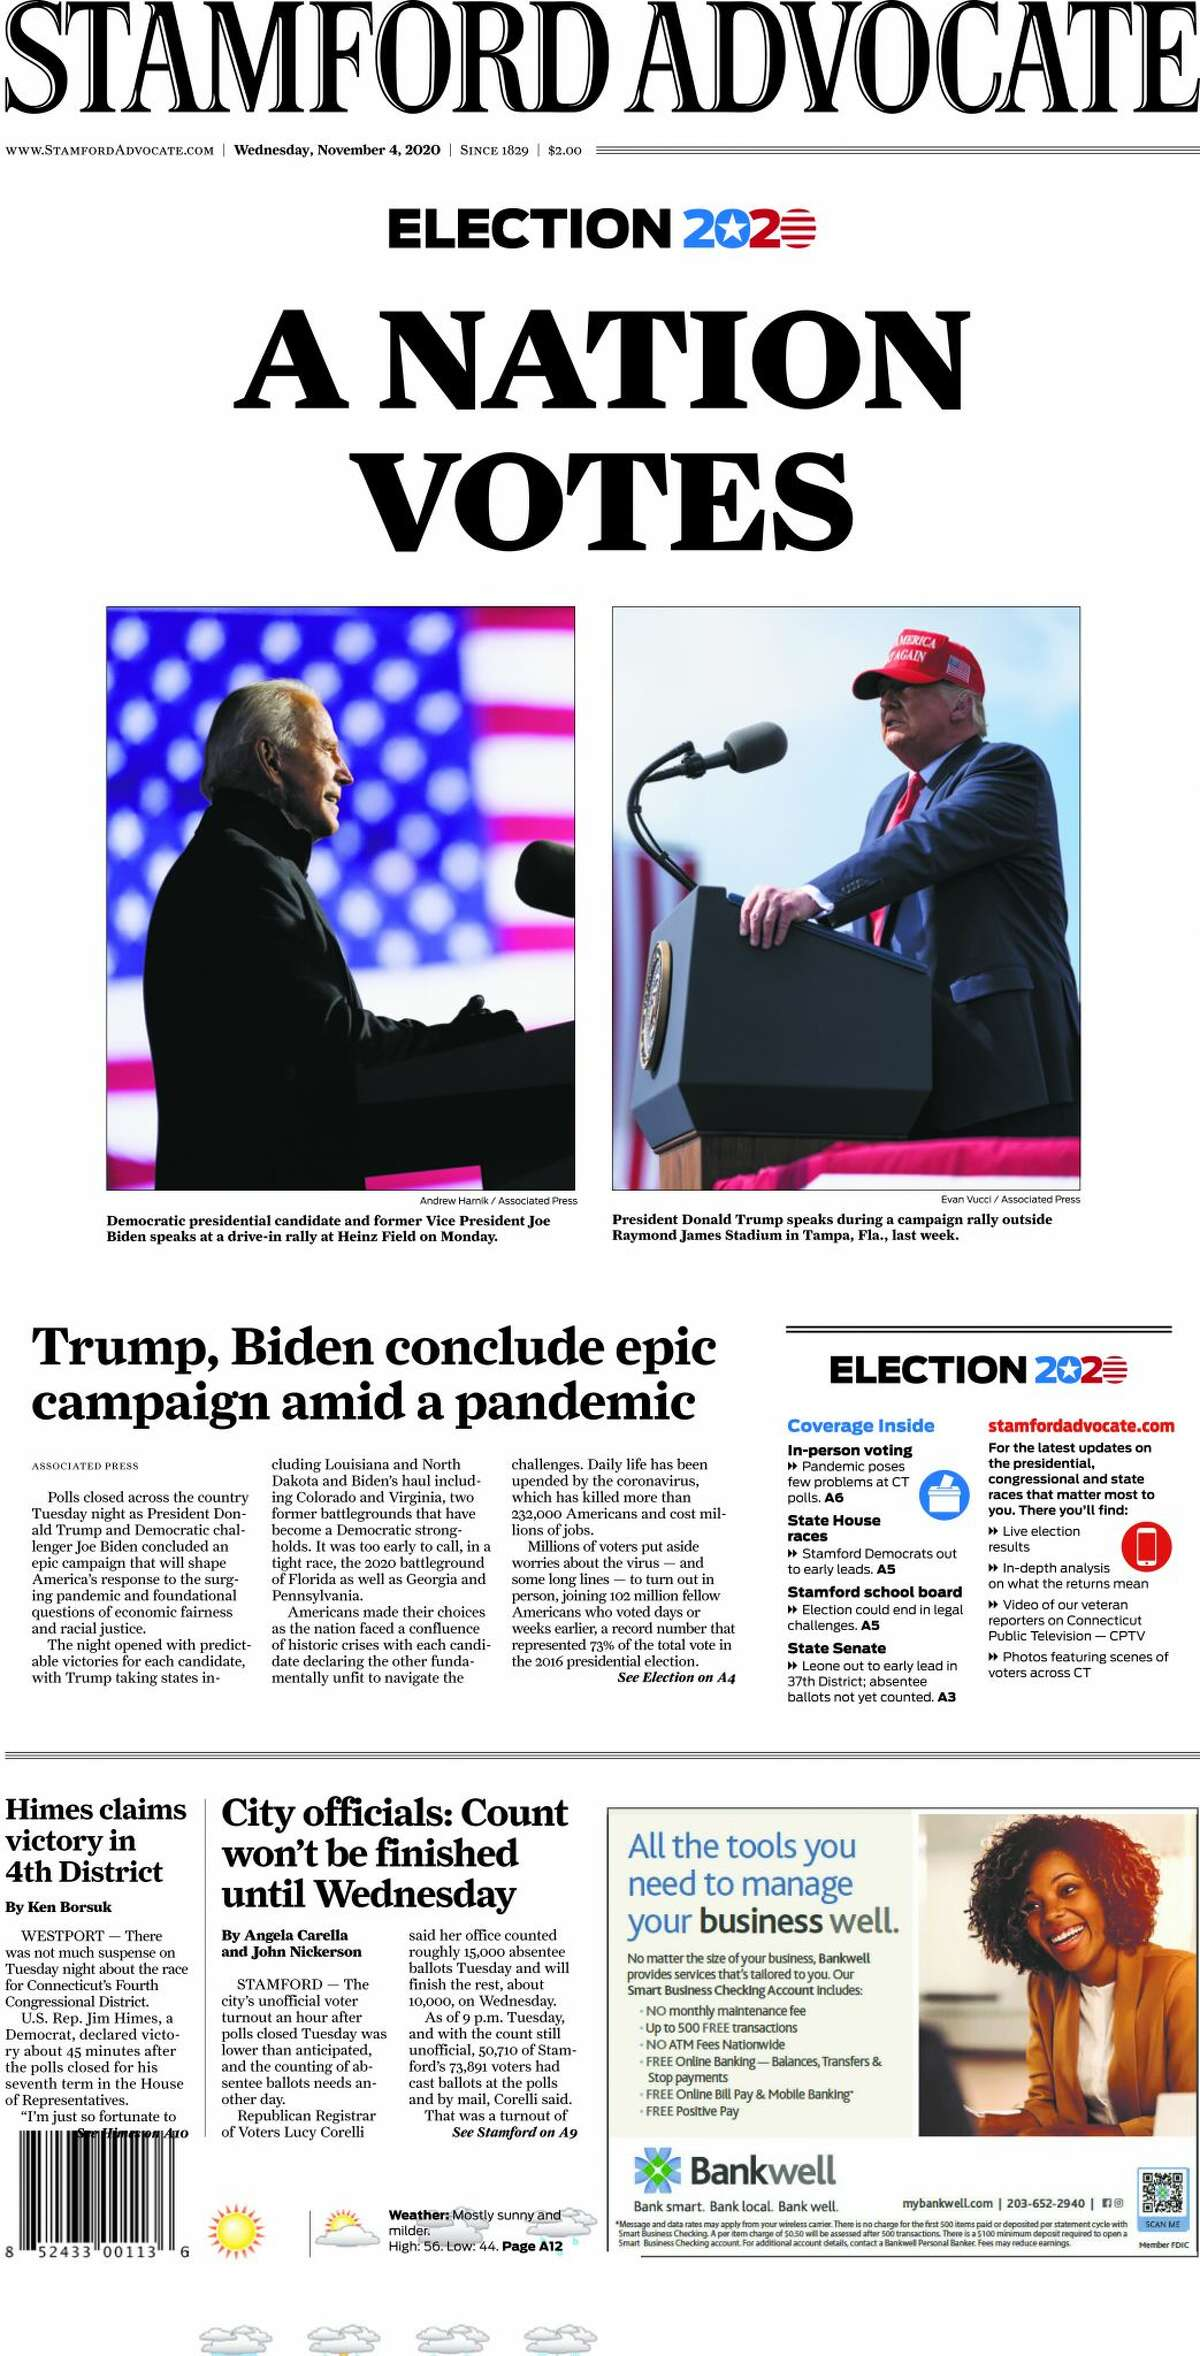 The Stamford Advocate's front page, Nov. 4, 2020.